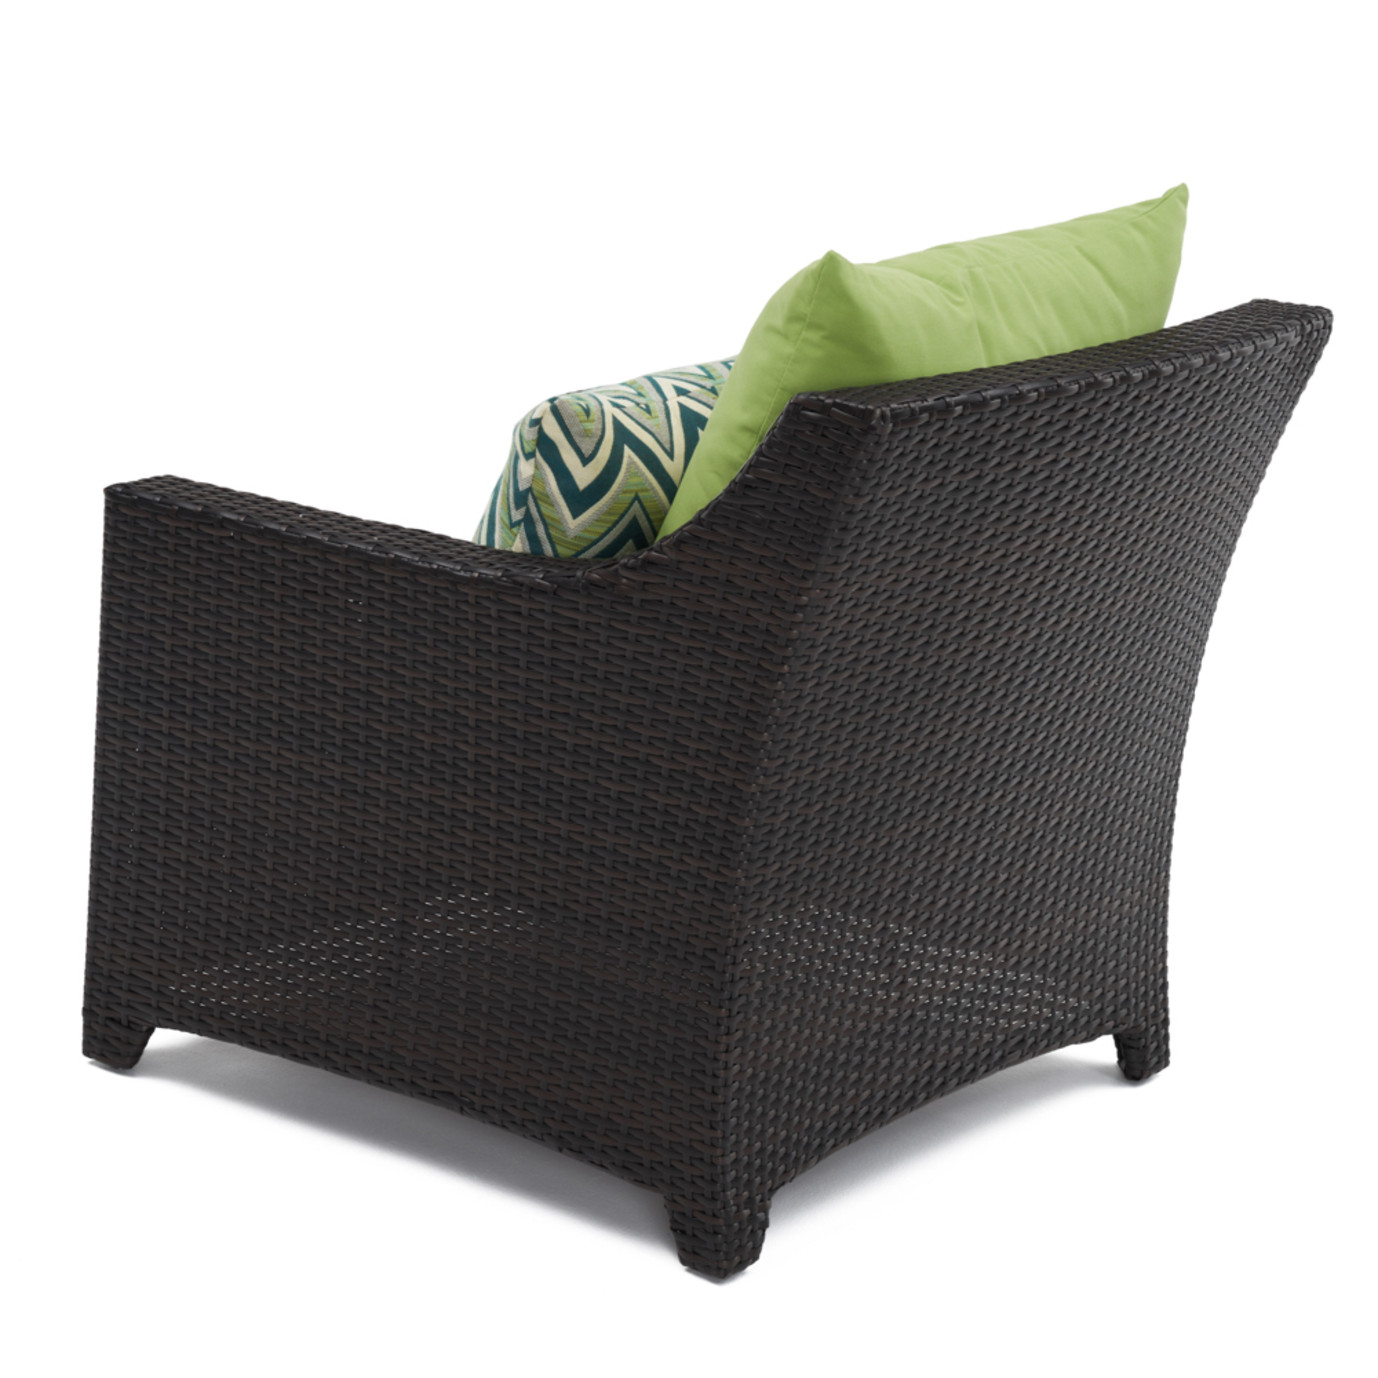 Deco™ 6pc Love and Club Seating Set - Ginkgo Green